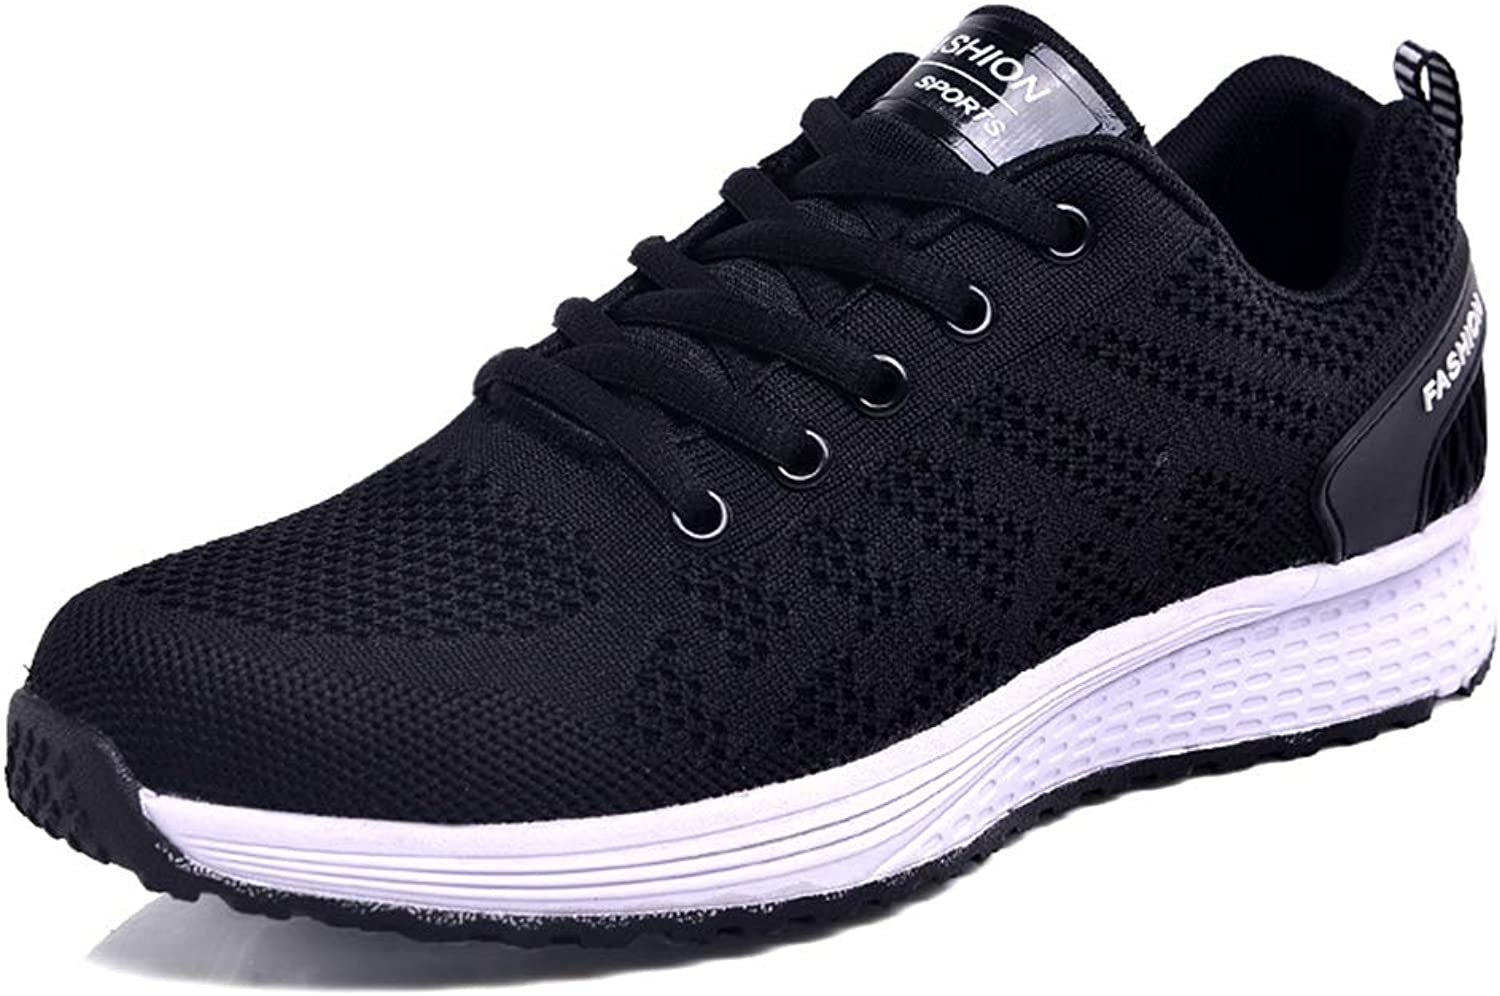 ProDIgal Womens Running shoes Cushion Sneakers Lightweight Athletic Tennis Sport shoes